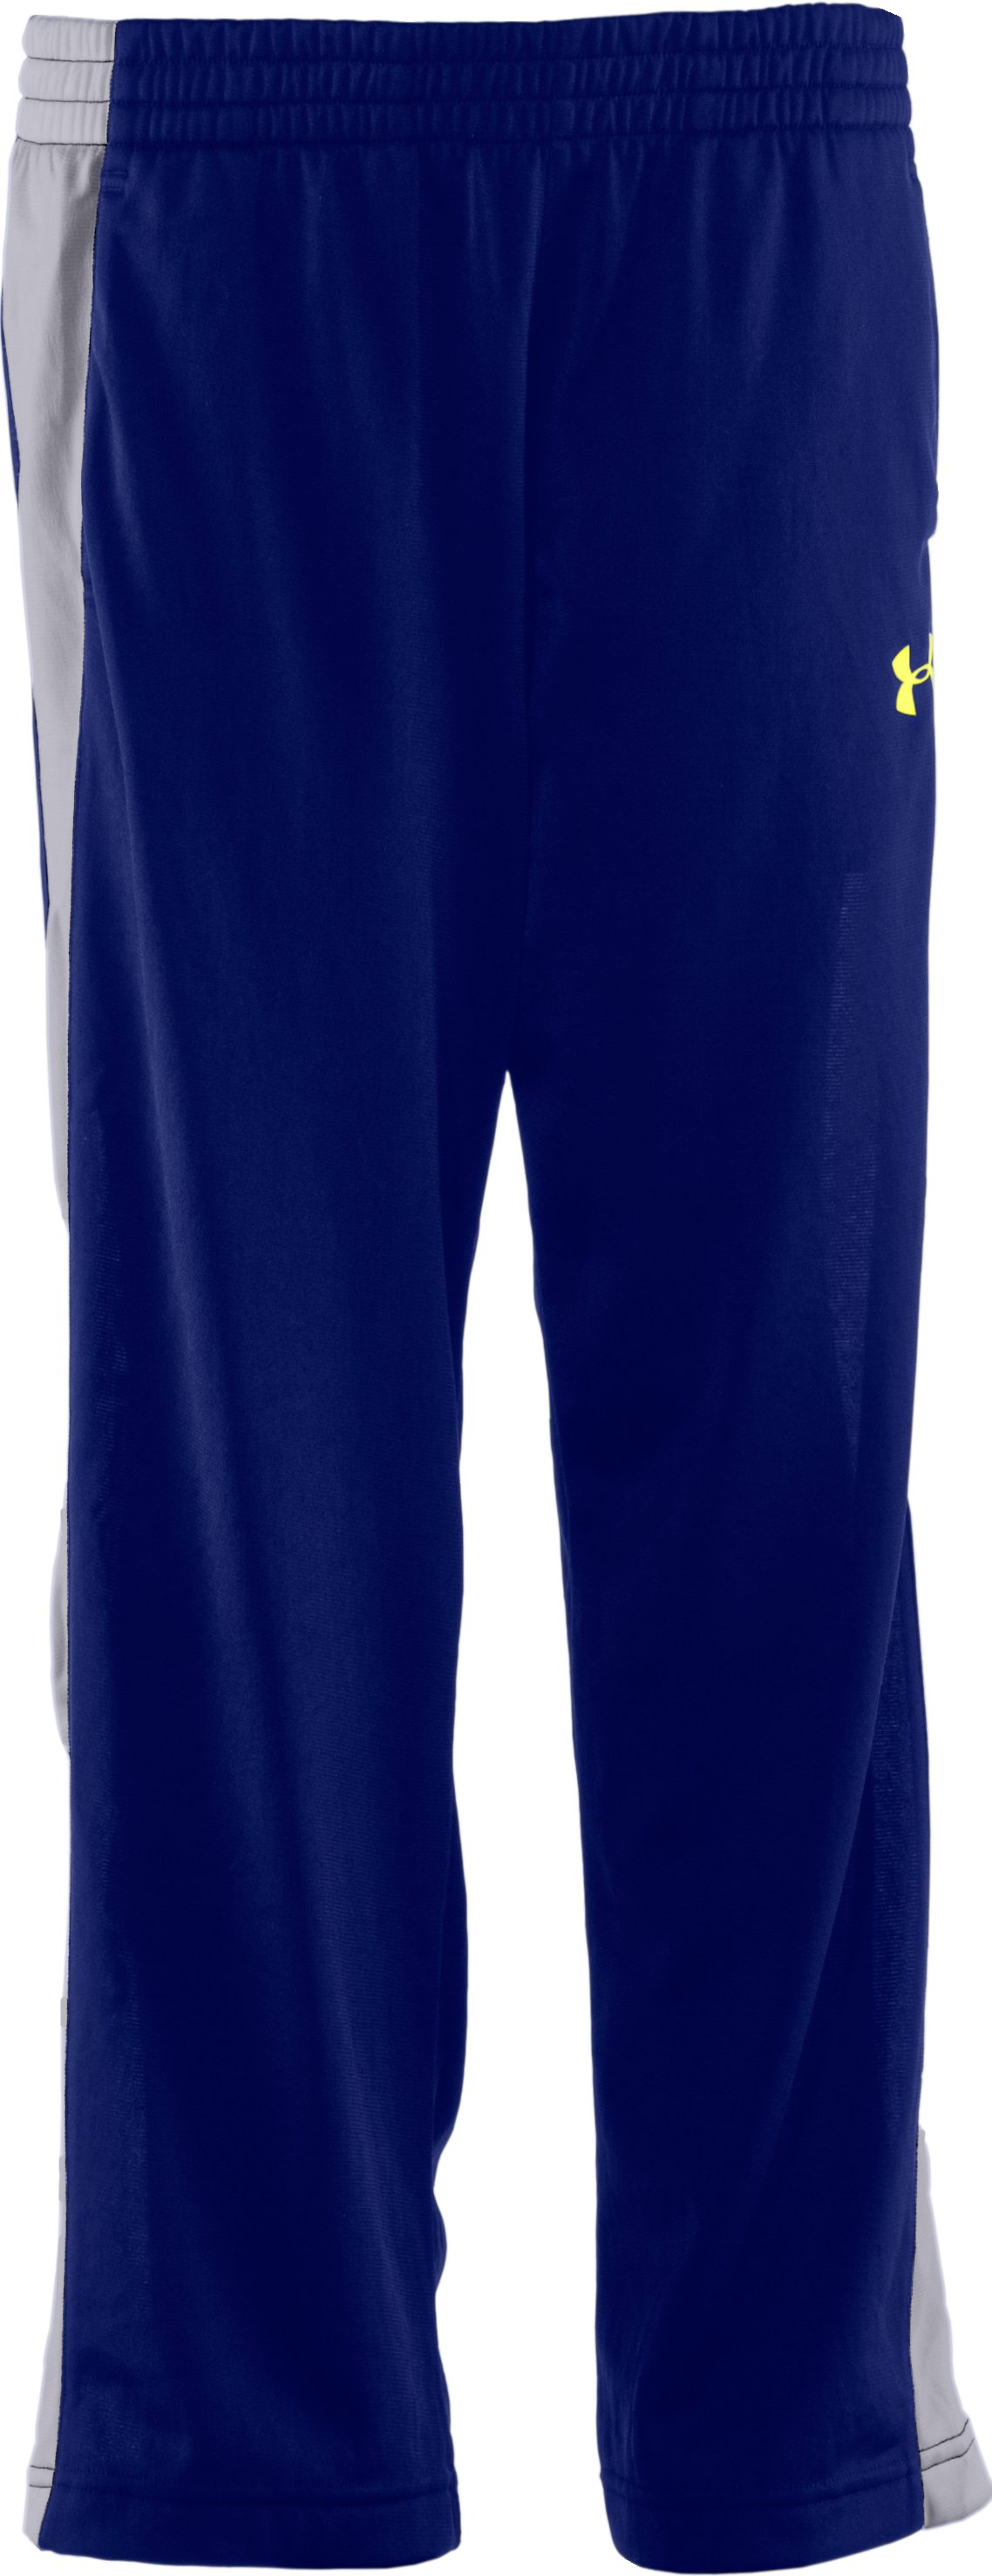 Boys' UA Brawler Knit Warm-Up Pants, Royal